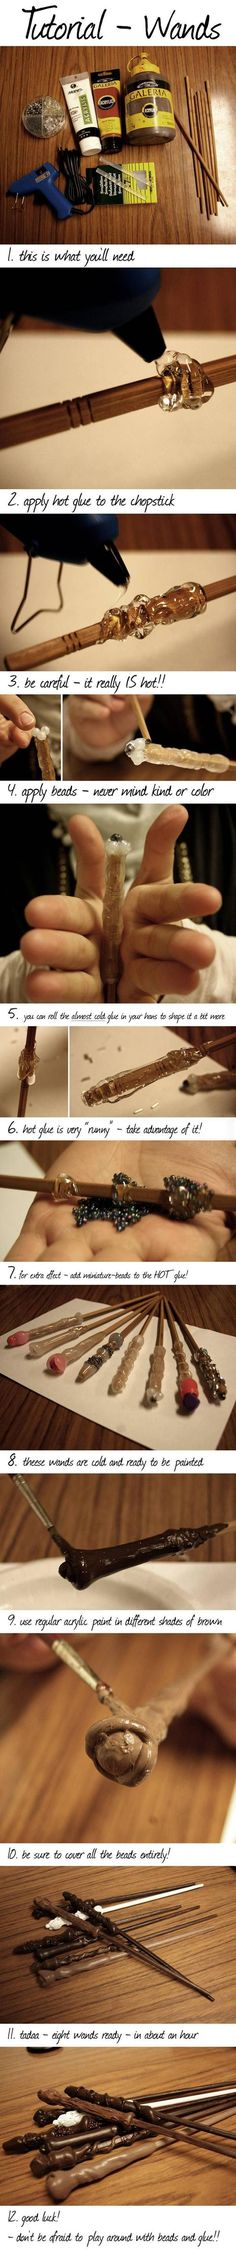 Harry Potter Wand Tutorial - Win Picture | Webfail - Fail Pictures and Fail Videos